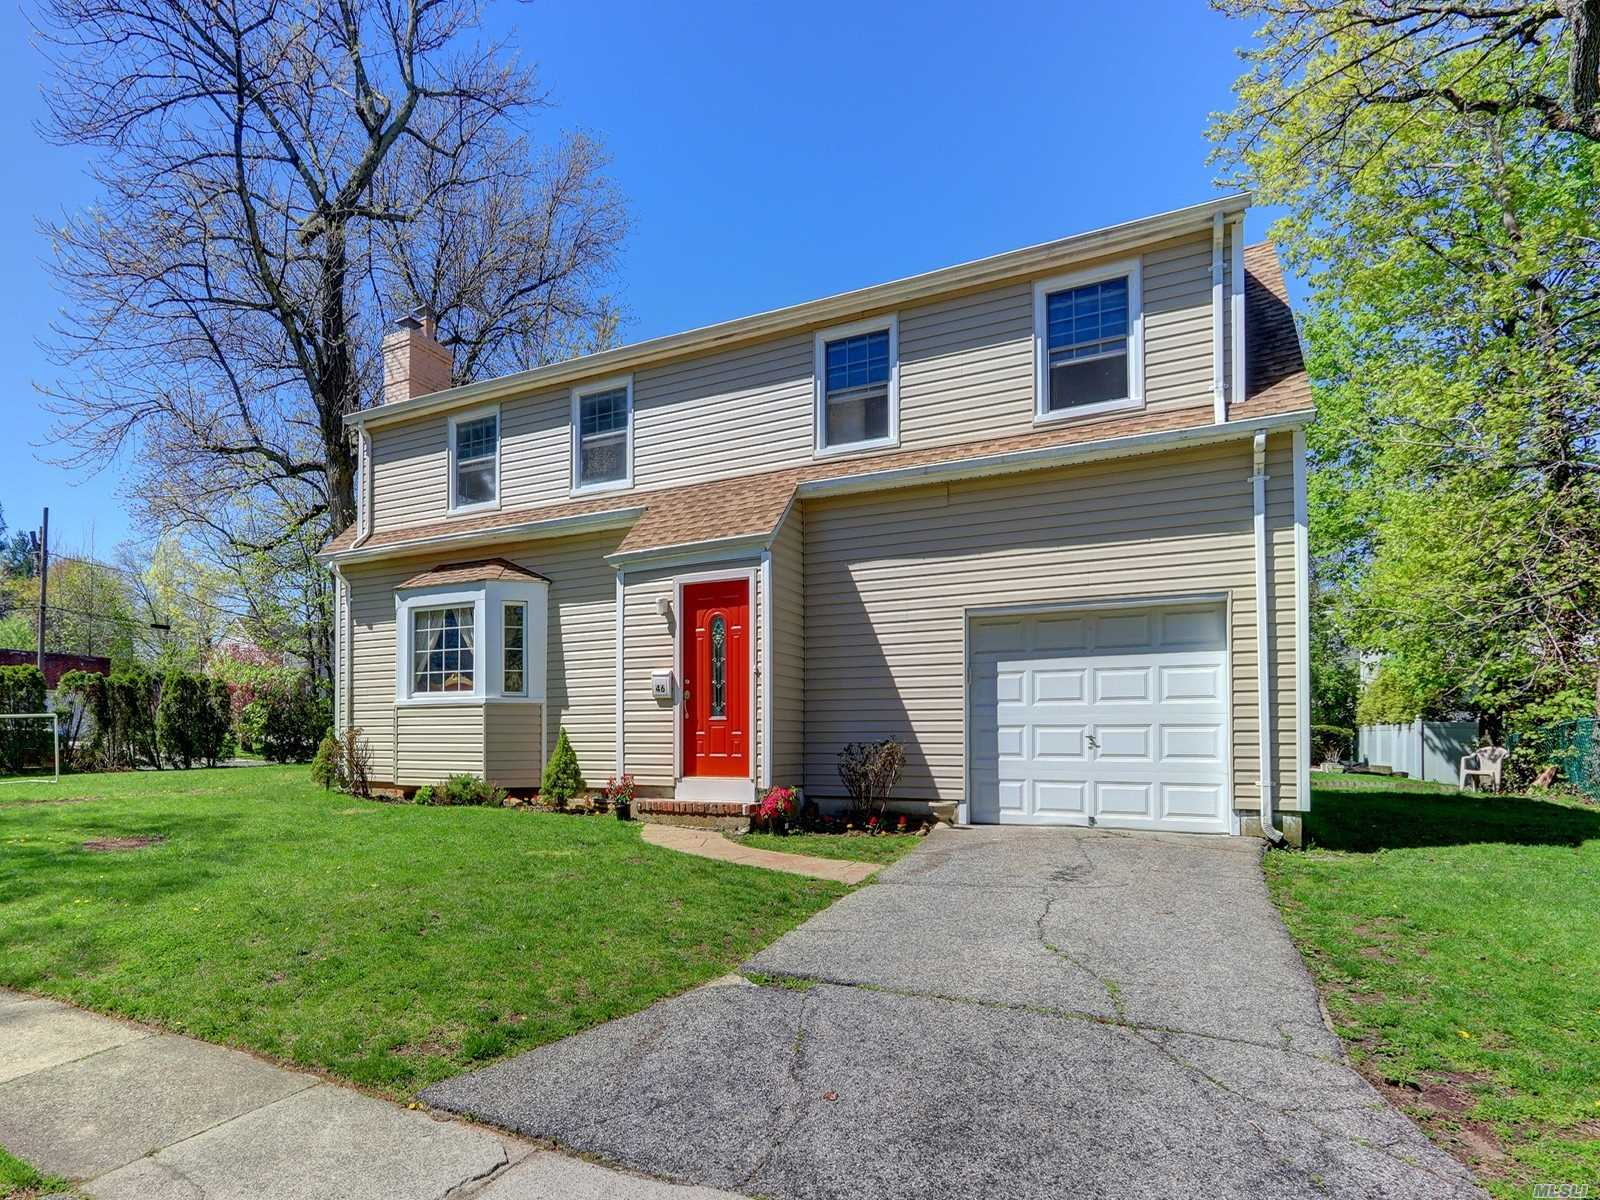 Spacious & Bright Beautiful Side Hall Colonial On Flat Property With Large Living Room & Dining Room, French Doors, Hi-Hats, Hardwood Floors Throughout, Cedar Closet Off Bedroom, Brand New Master Bathroom & Brand New Sidings Throughout, Newly Renovated Basement, Large Private Backyard, New Roof, New Hot Water Heater, No Village Taxes, Homeowners Never Grieved The Taxes.Near Houses Of Worship, Easy Access To Northern Blvd. In Great Neck Park District With Pool, Tennis Courts, Ice-Skating & Waterfront Parks.